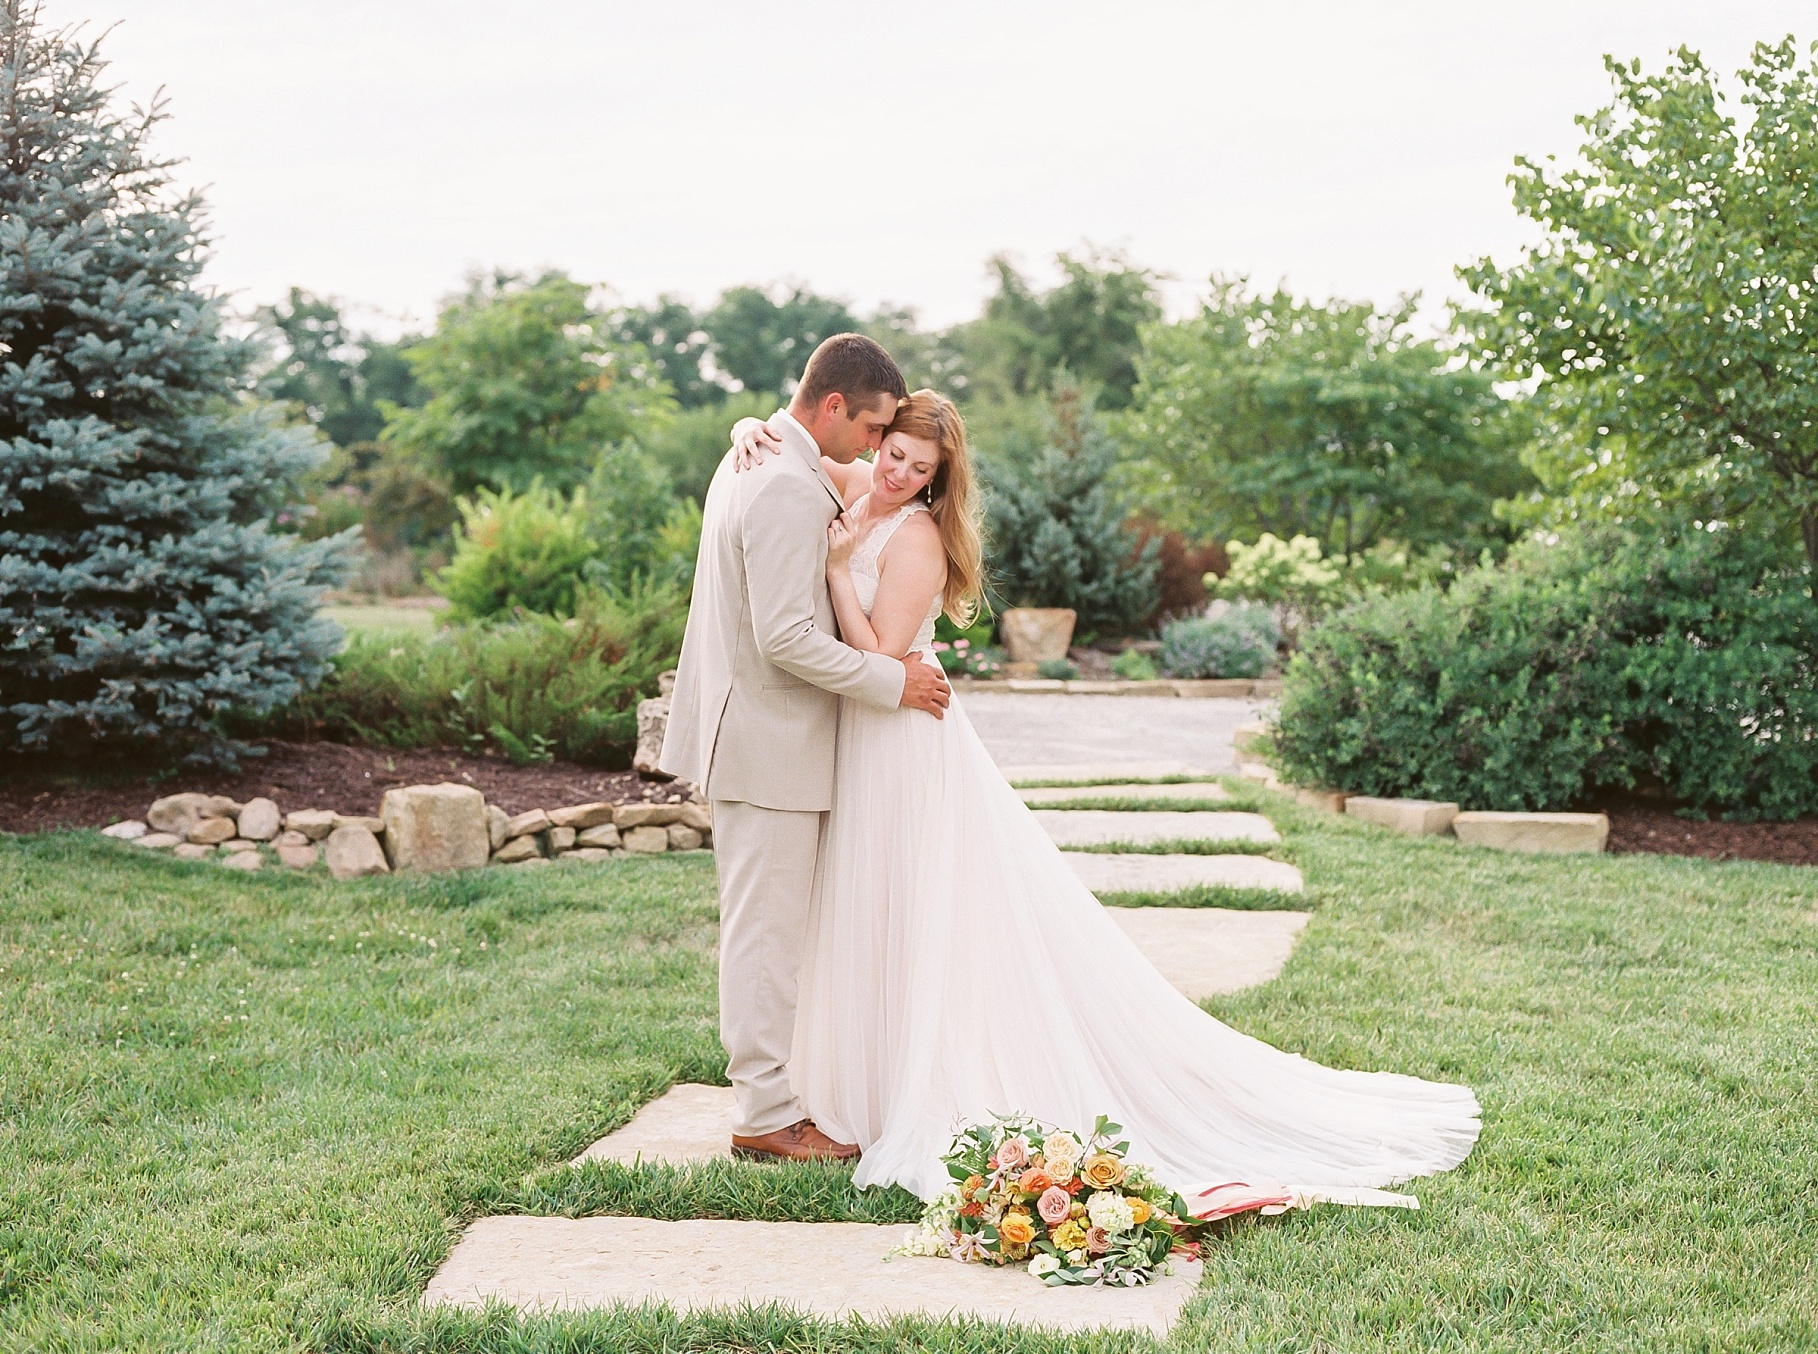 Late Summer Wedding With Pastel Toned Soiree at Blue Bell Farm by Kelsi Kliethermes Photography Best Columbia Missouri Wedding Photographer_0025.jpg